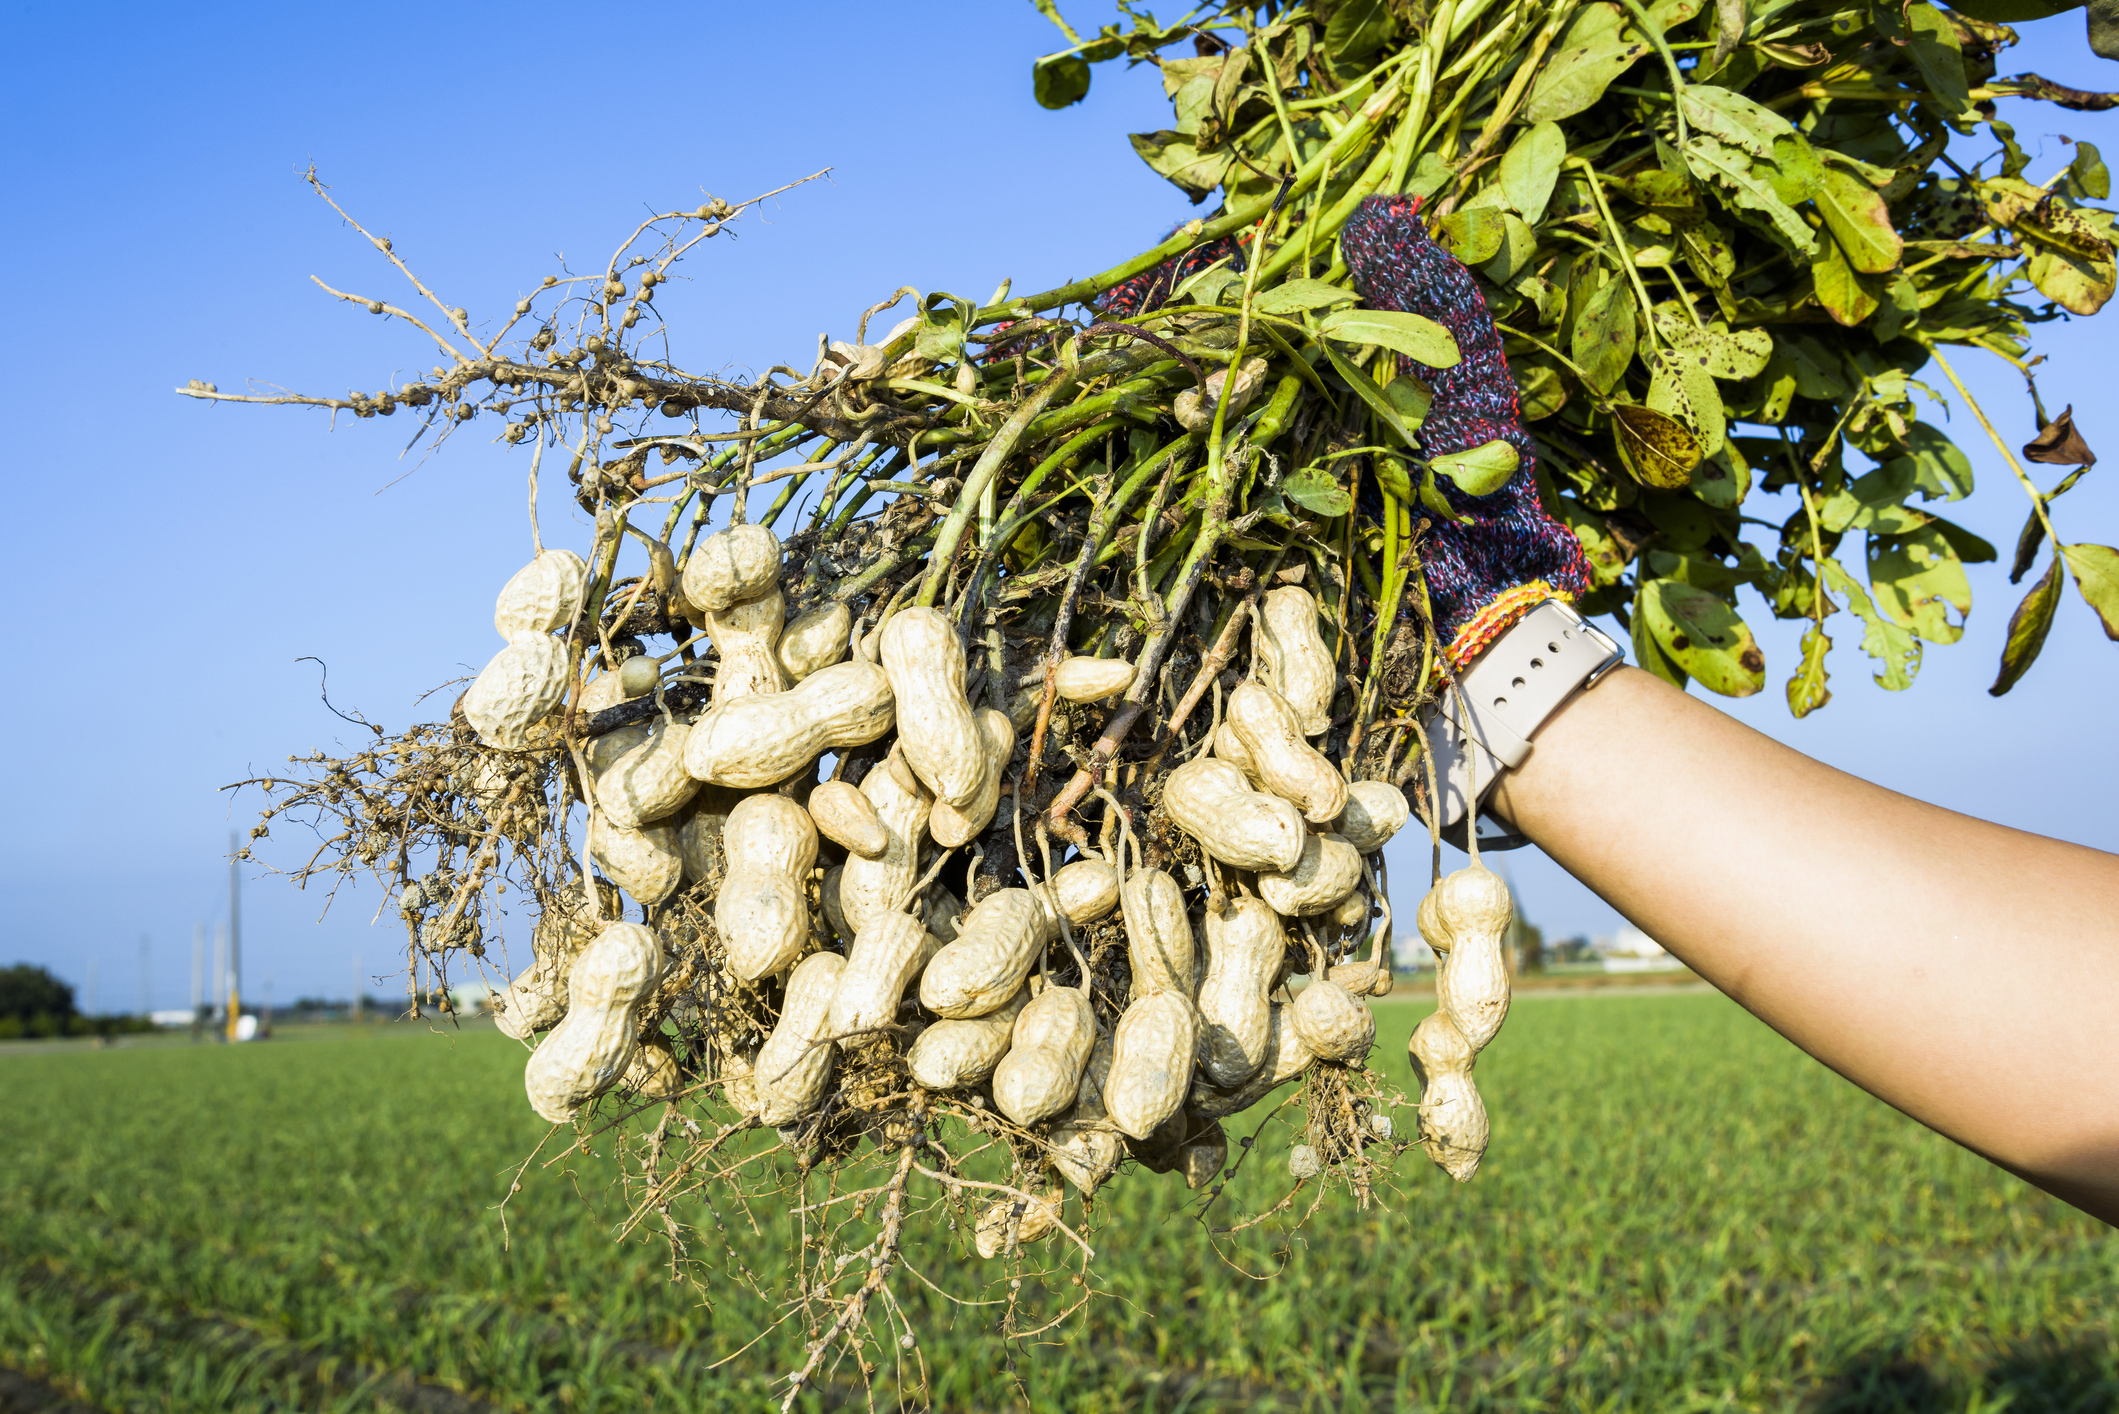 Peanuts:  Confirming Food Quality & Safety From the Ground Up